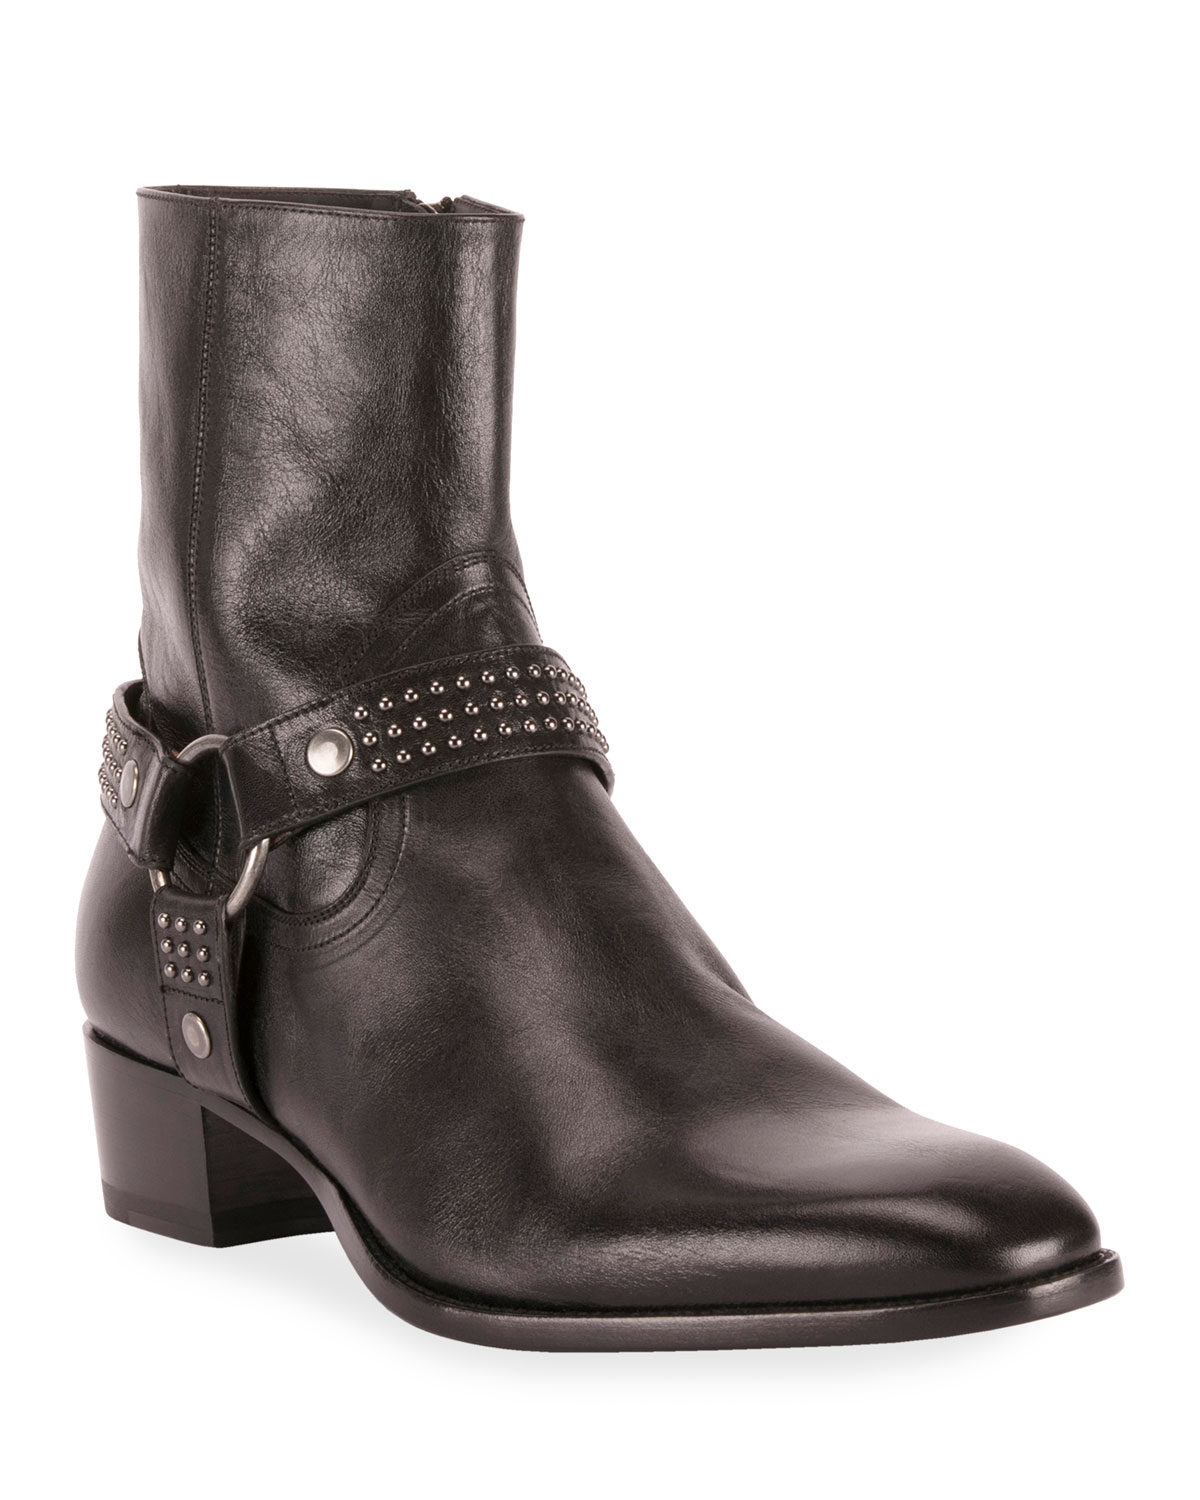 Men's Wyatt Studded Harness Boots by Saint Laurent